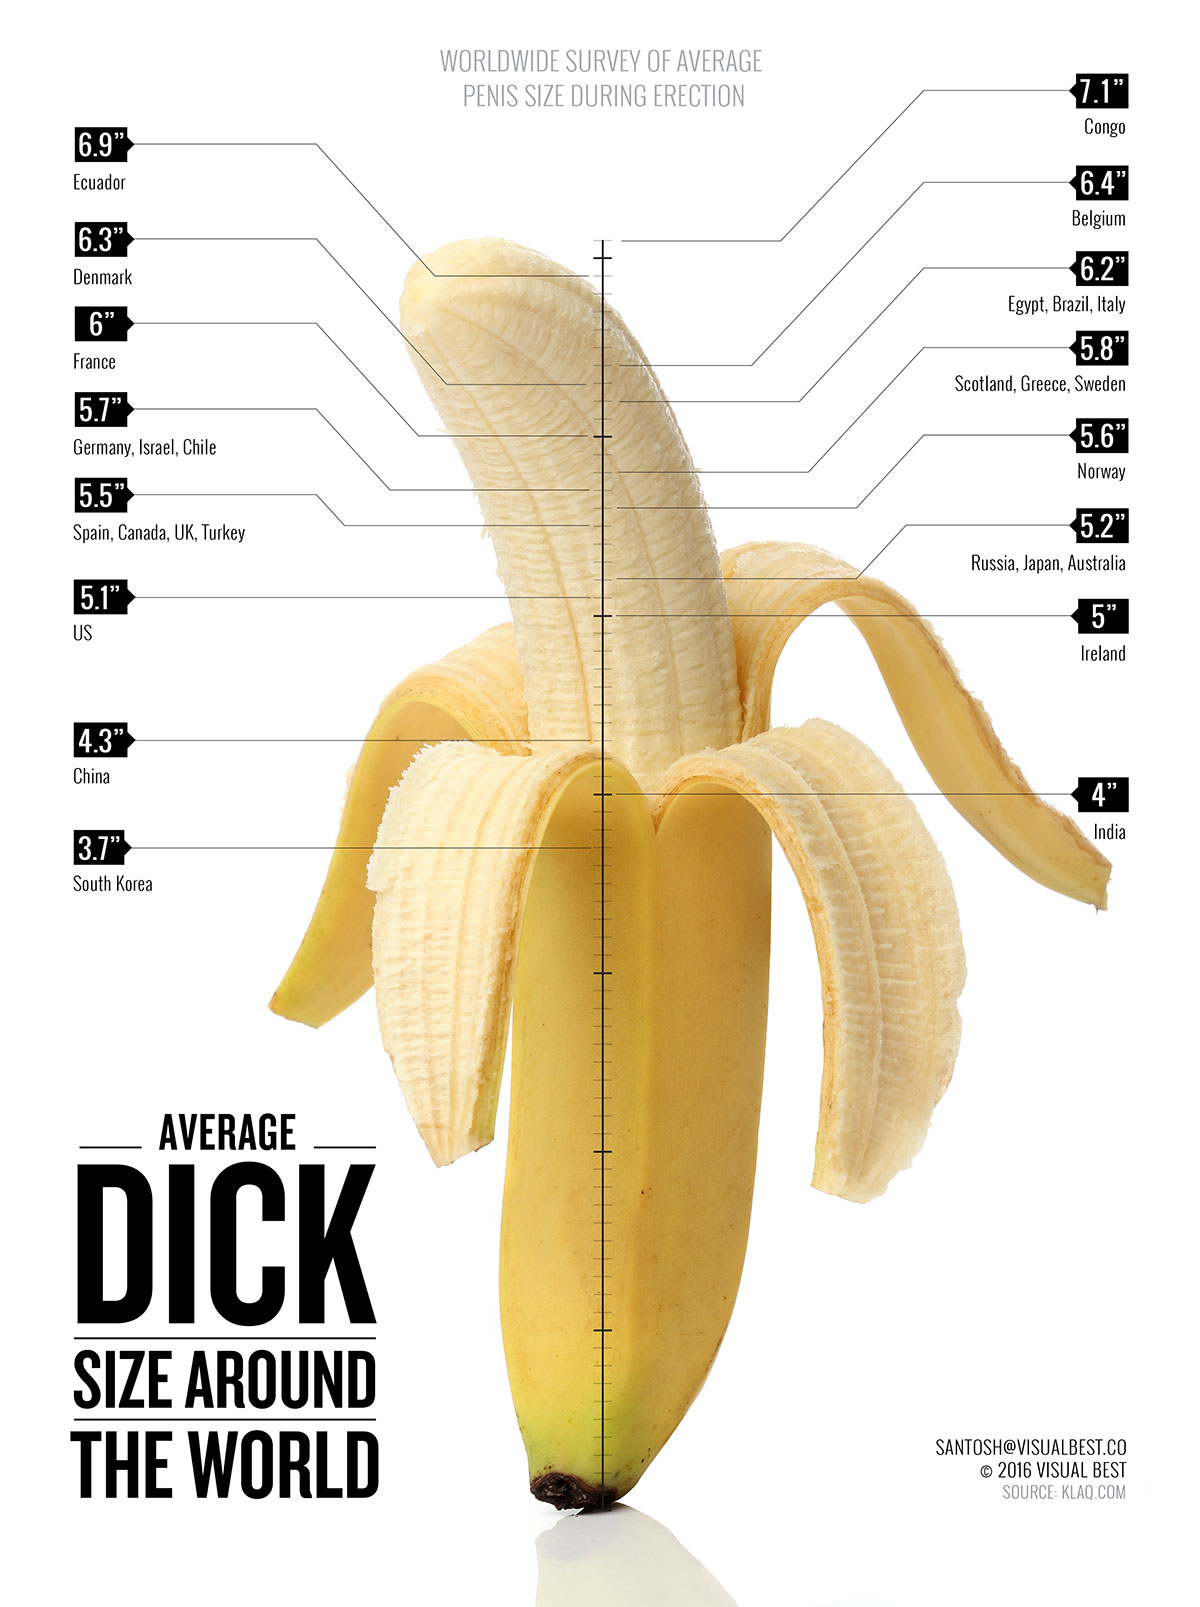 average penile size around the world